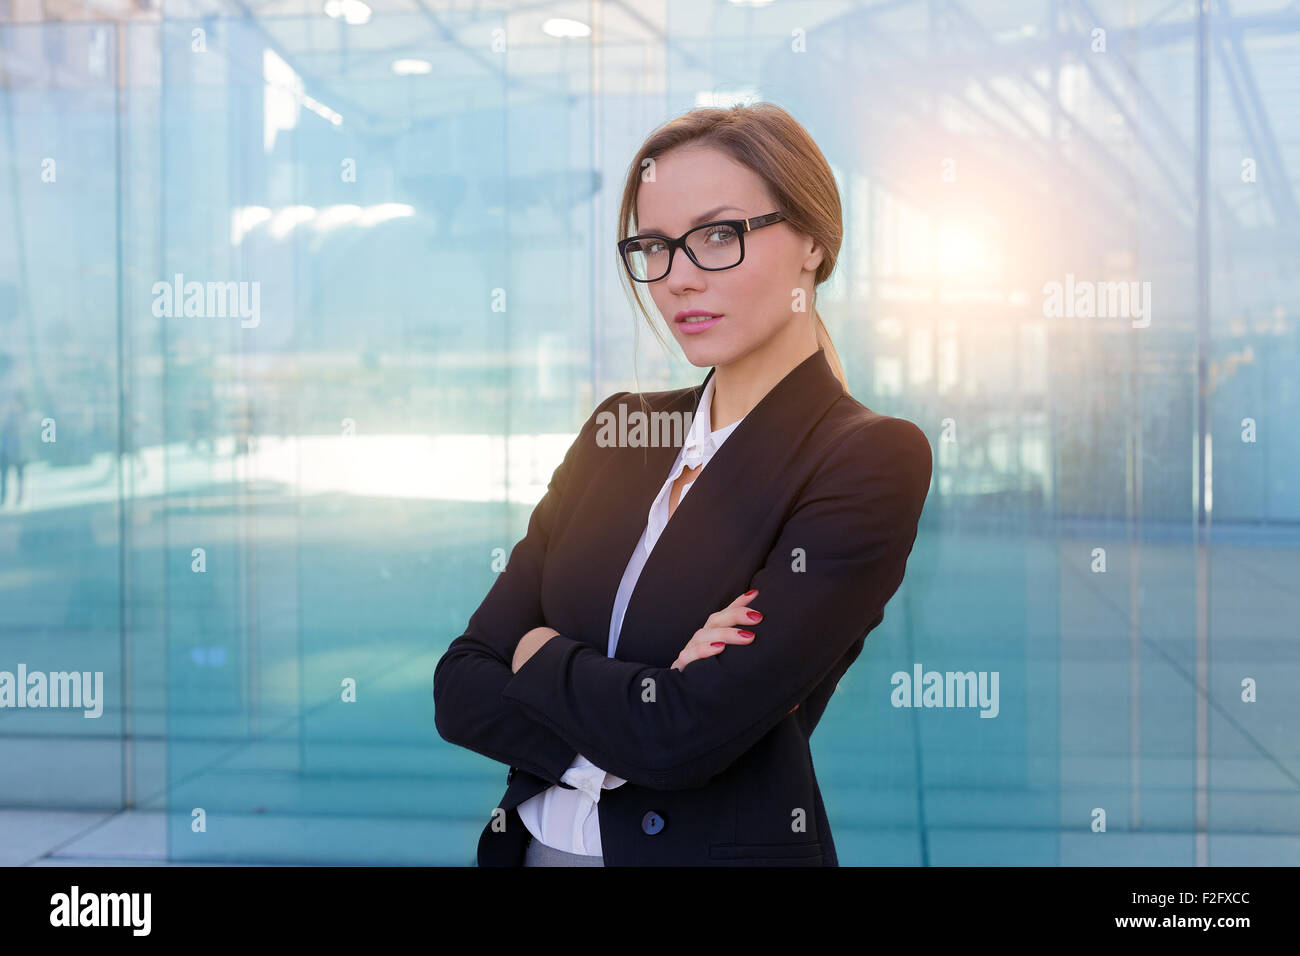 Portrait of a woman Photo Stock